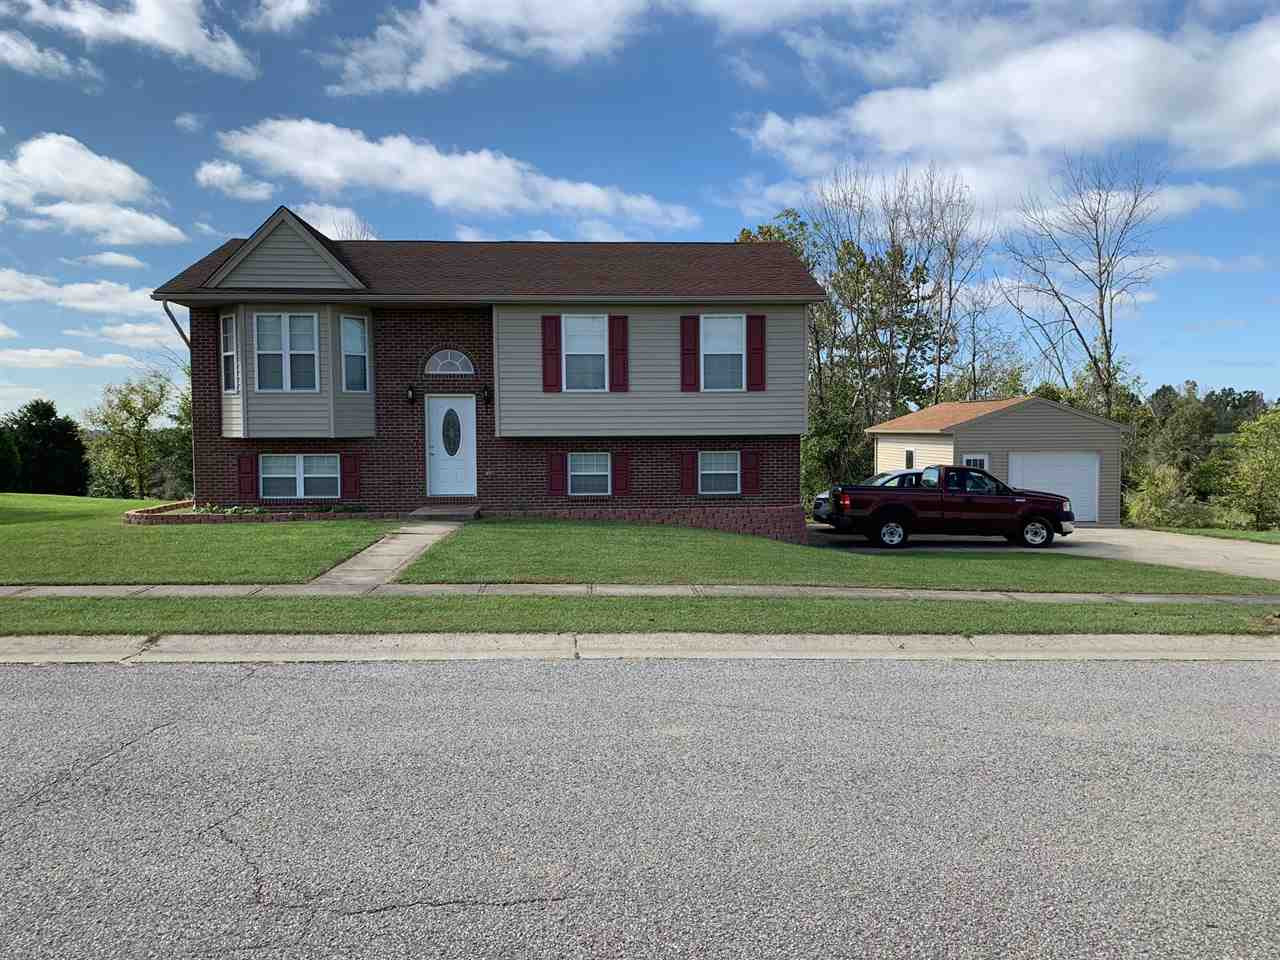 Photo 1 for 175 Ambassador Dry Ridge, KY 41035